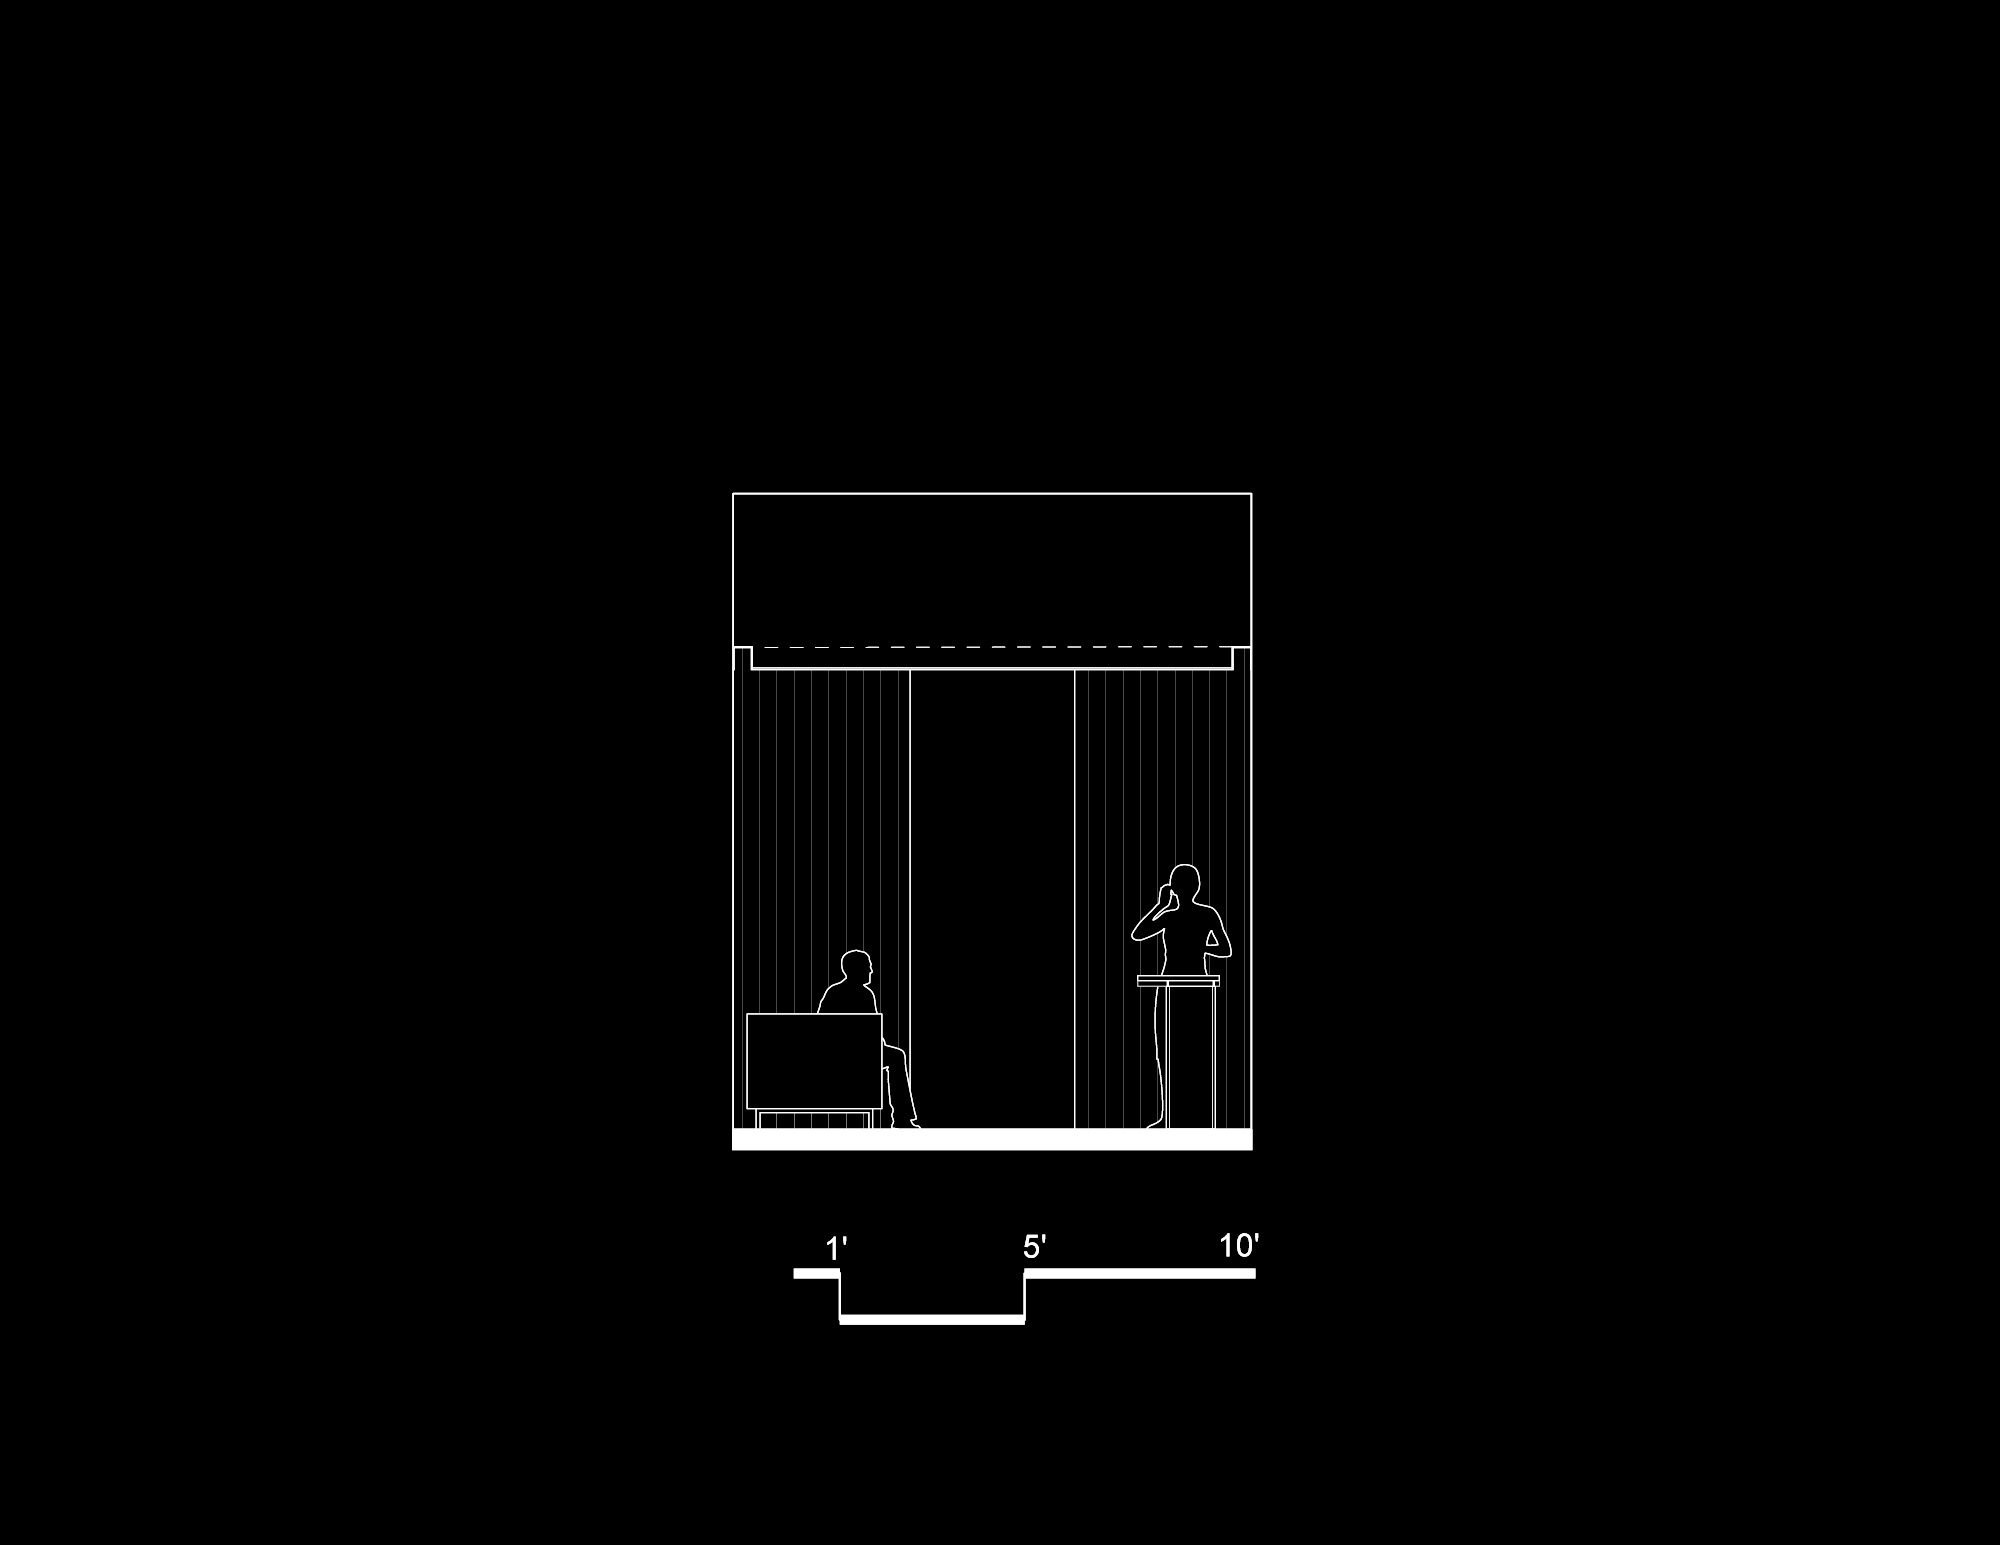 20170707-Sections_A_BLACK.jpg